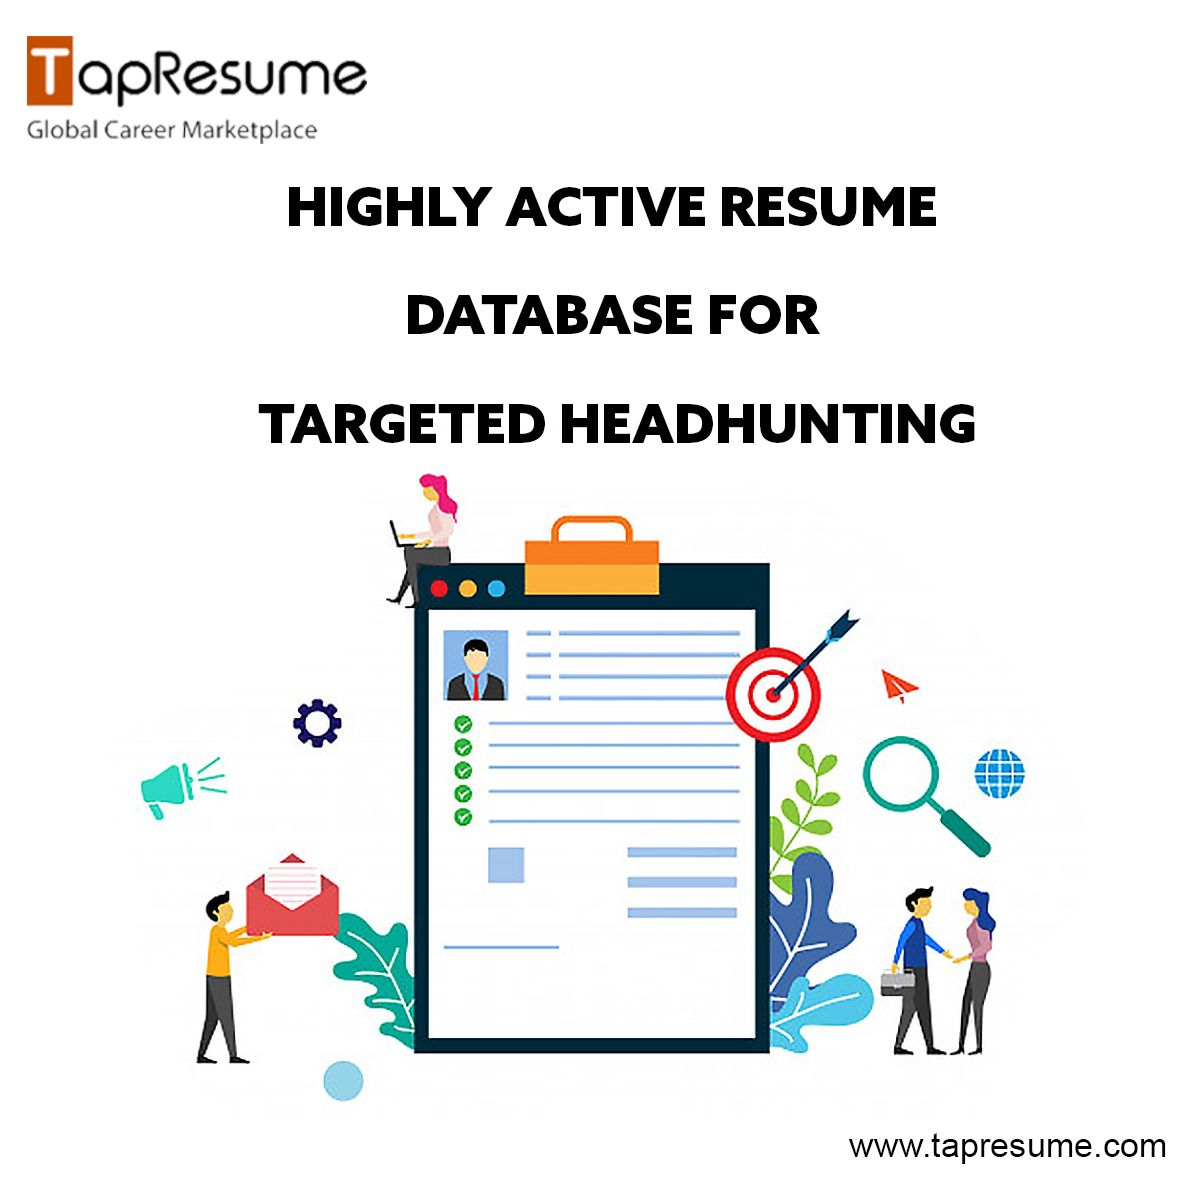 Highly active resume database for targeted headhunting